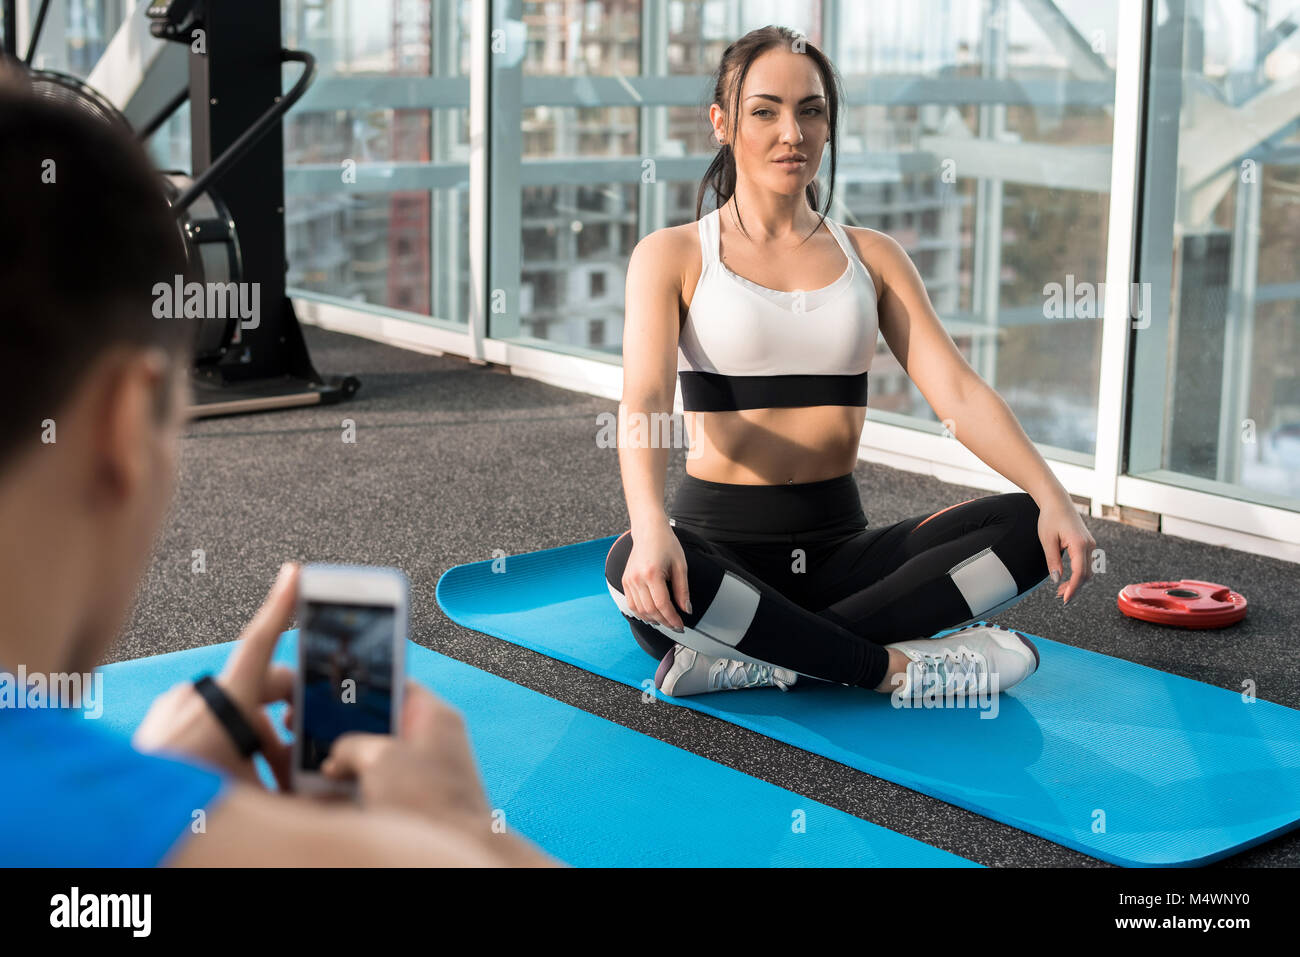 3d38d16e09930 Full length portrait of fit young woman posing for photo during yoga  practice in modern health club